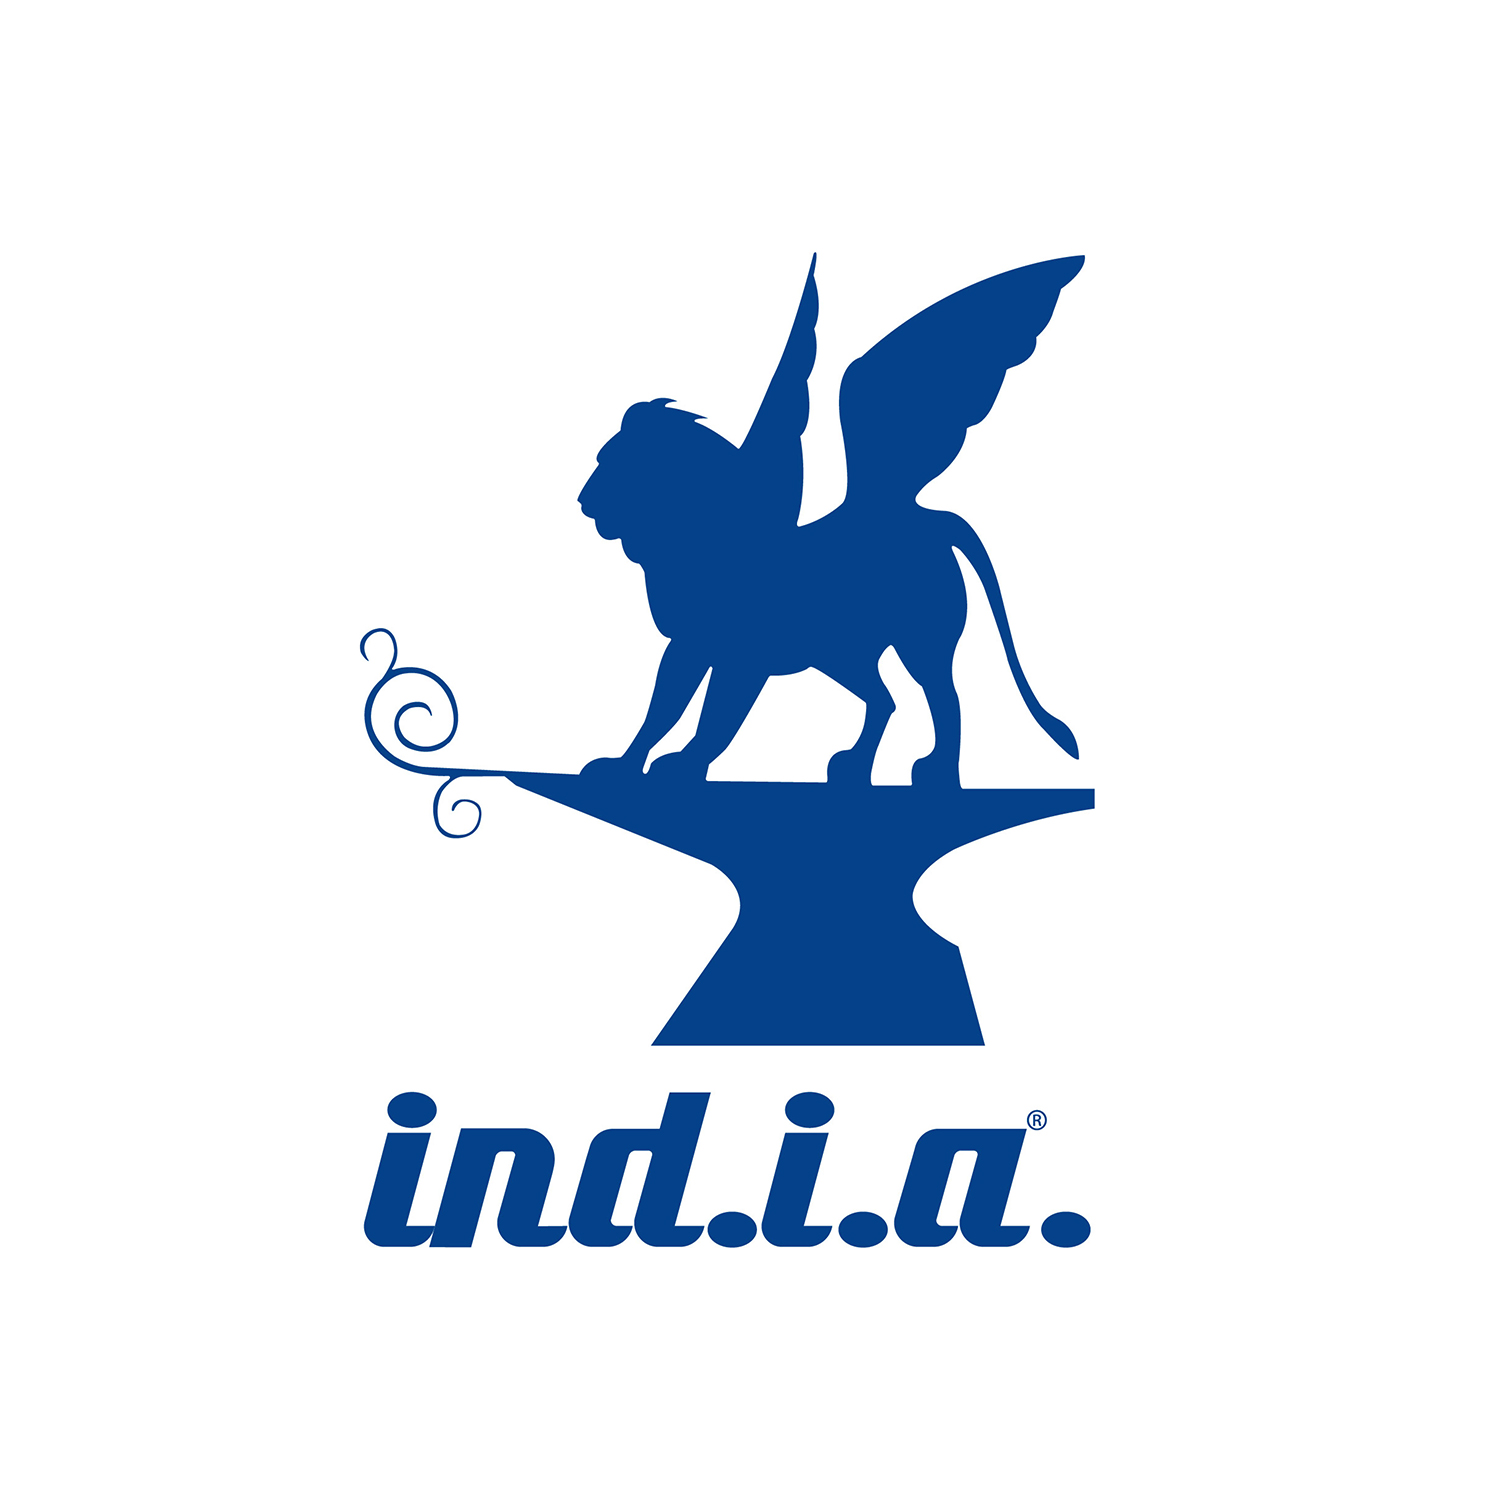 1971The company Ind.i.a. is founded at the foot of the Alps in the province of Vicenza - Italy.